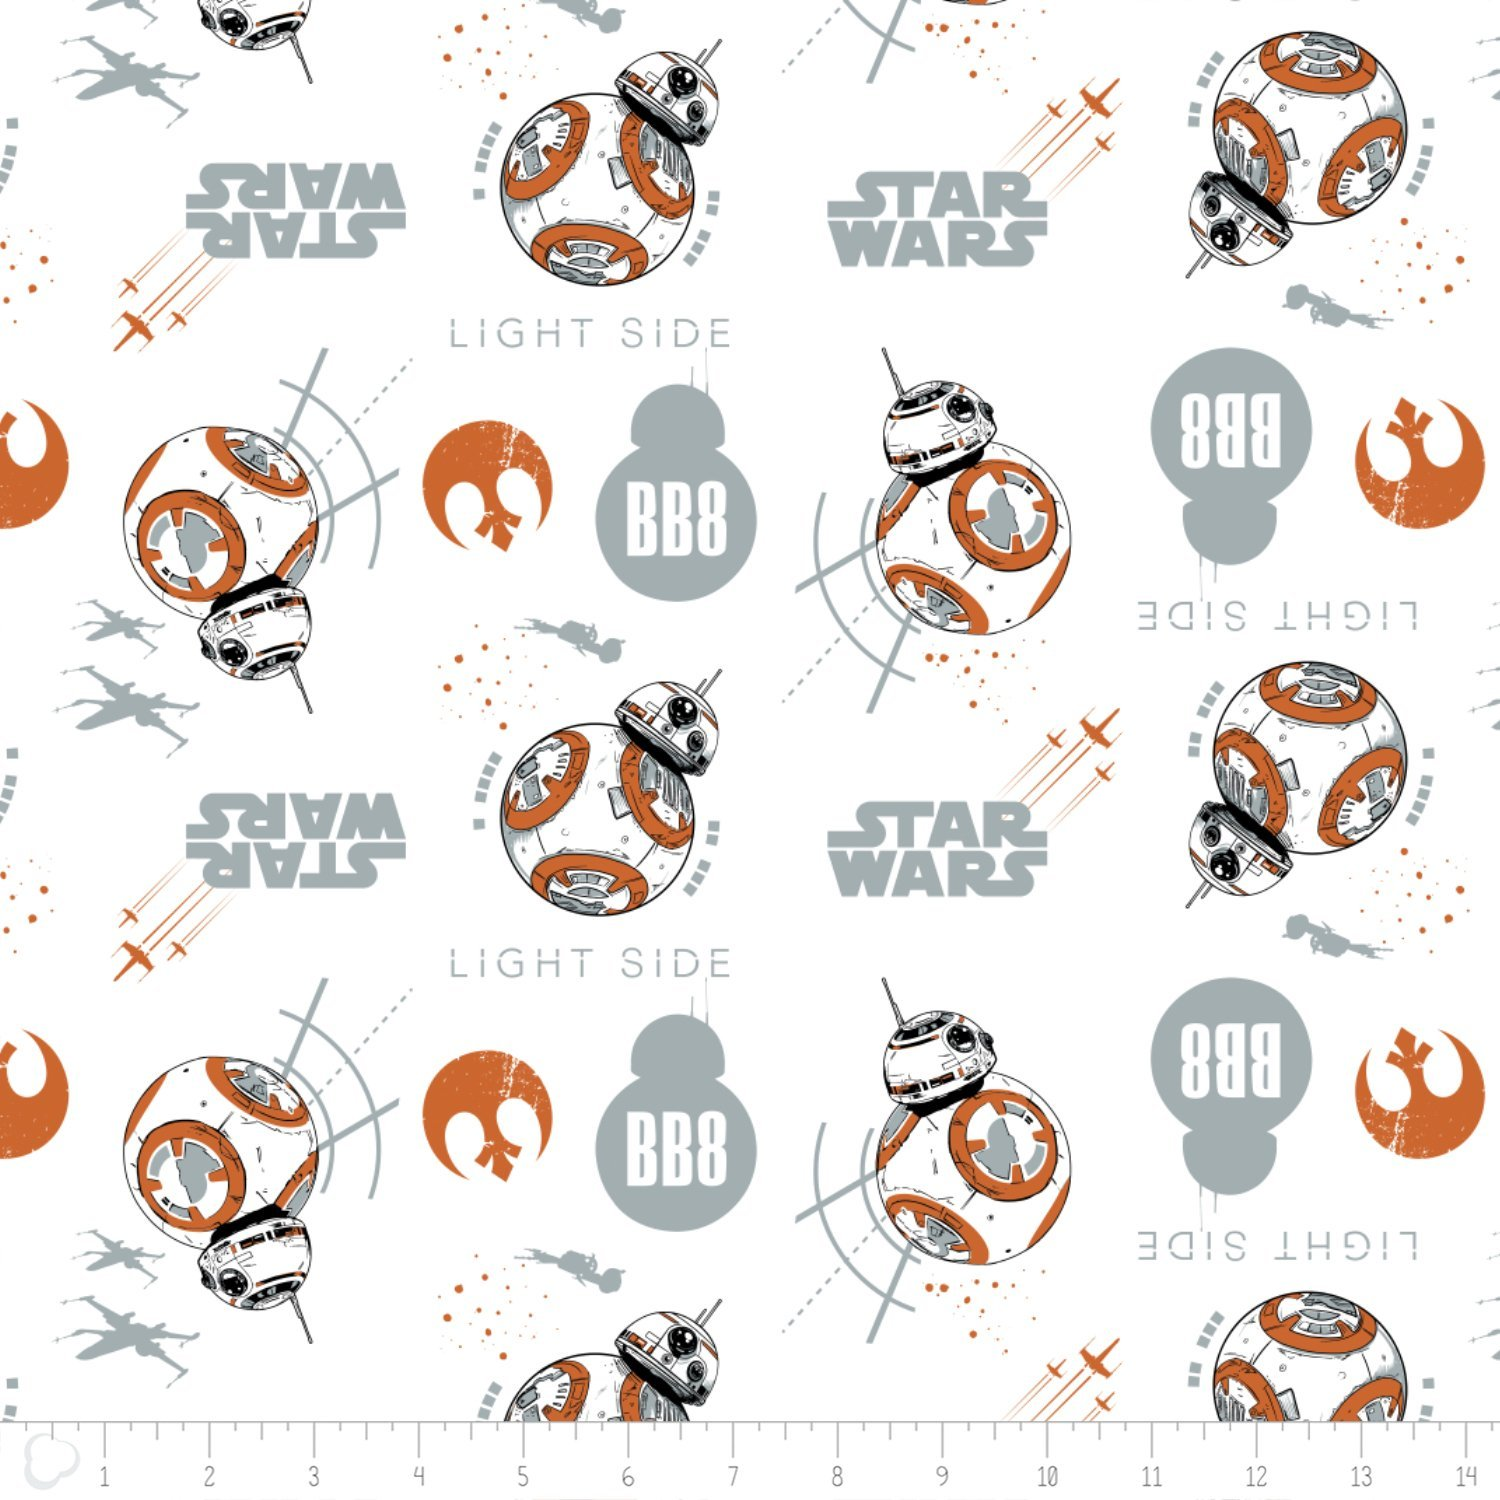 Star Wars 7360403-2 BB8 on White